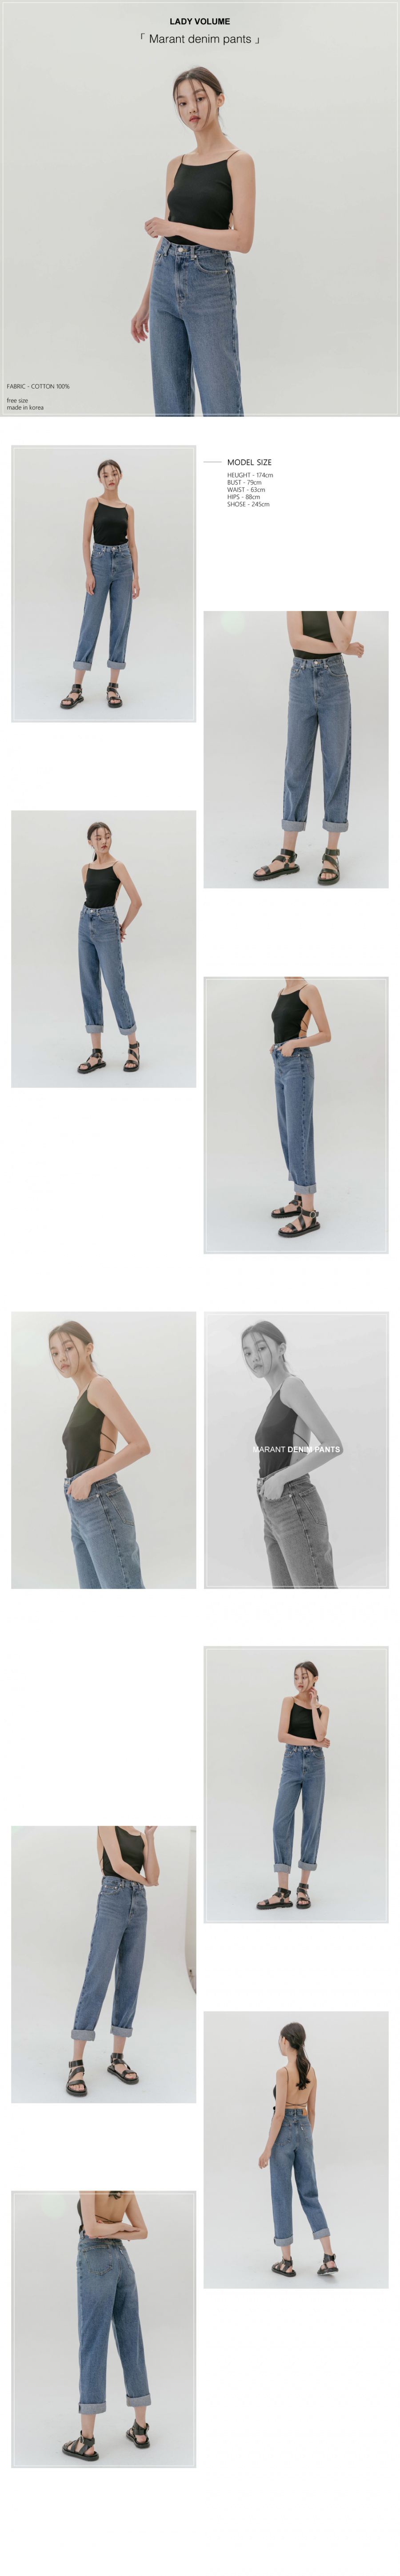 레이디 볼륨(LADY VOLUME) basic dinim pants